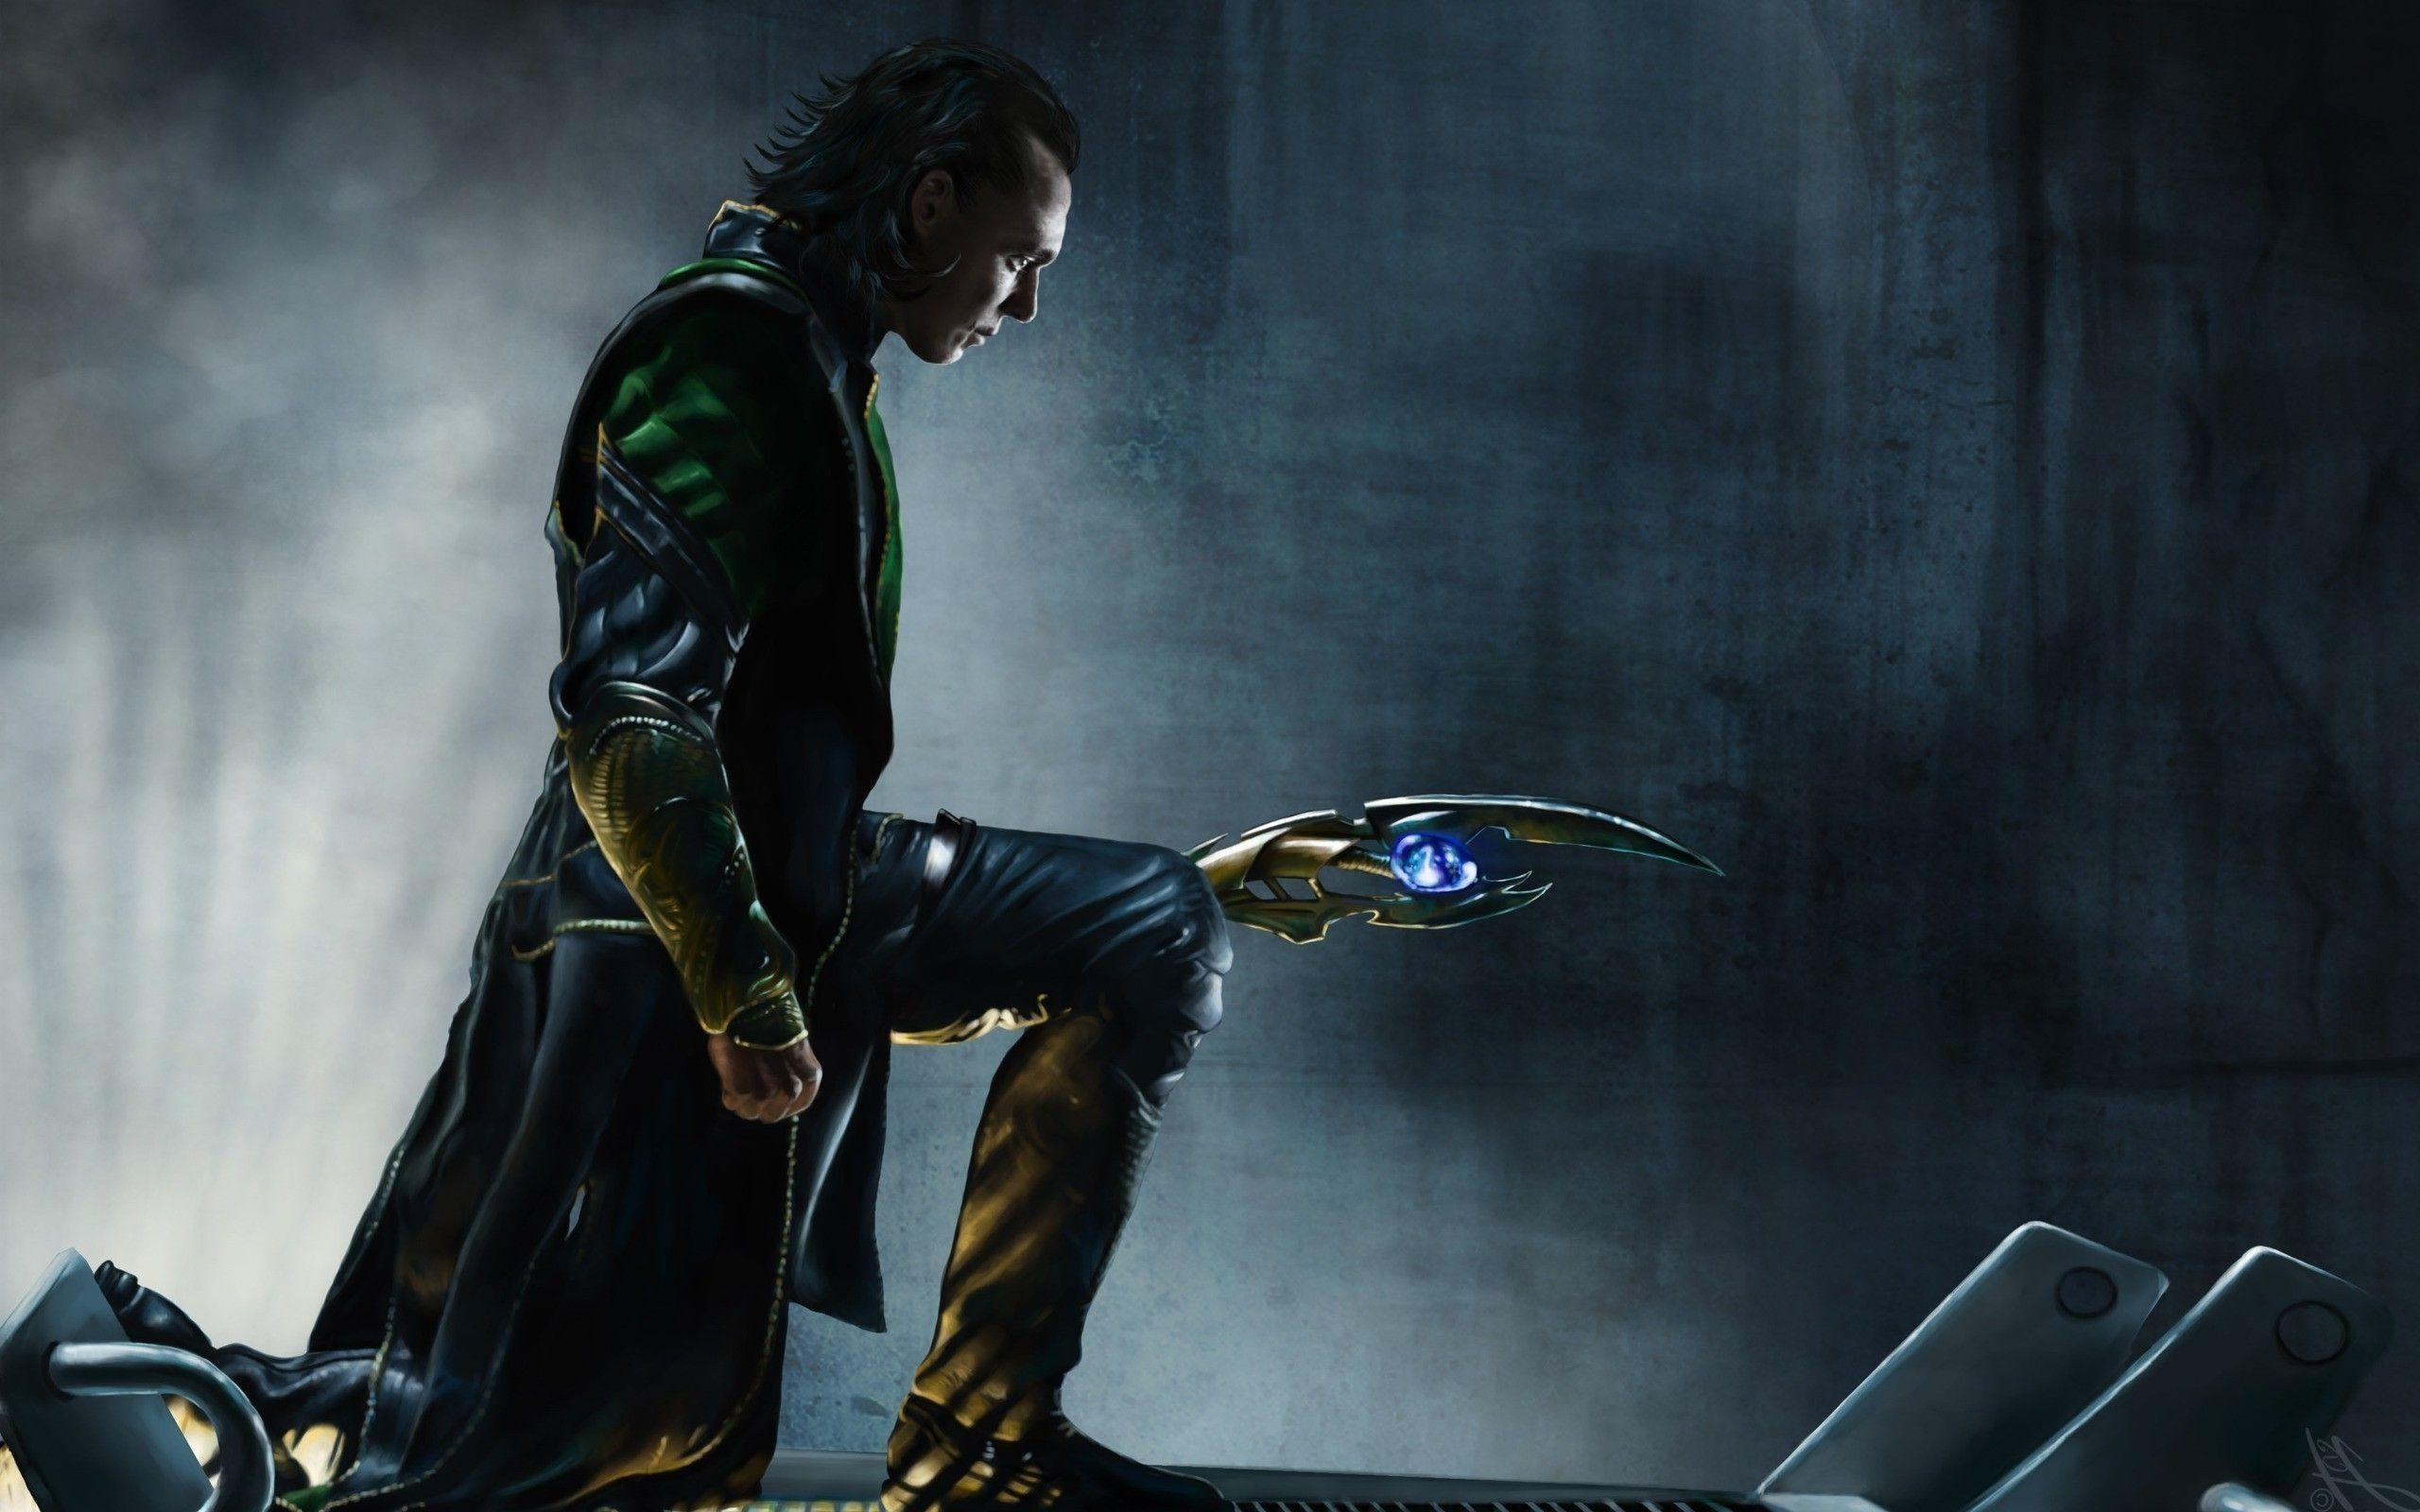 loki background for tigger - photo #1